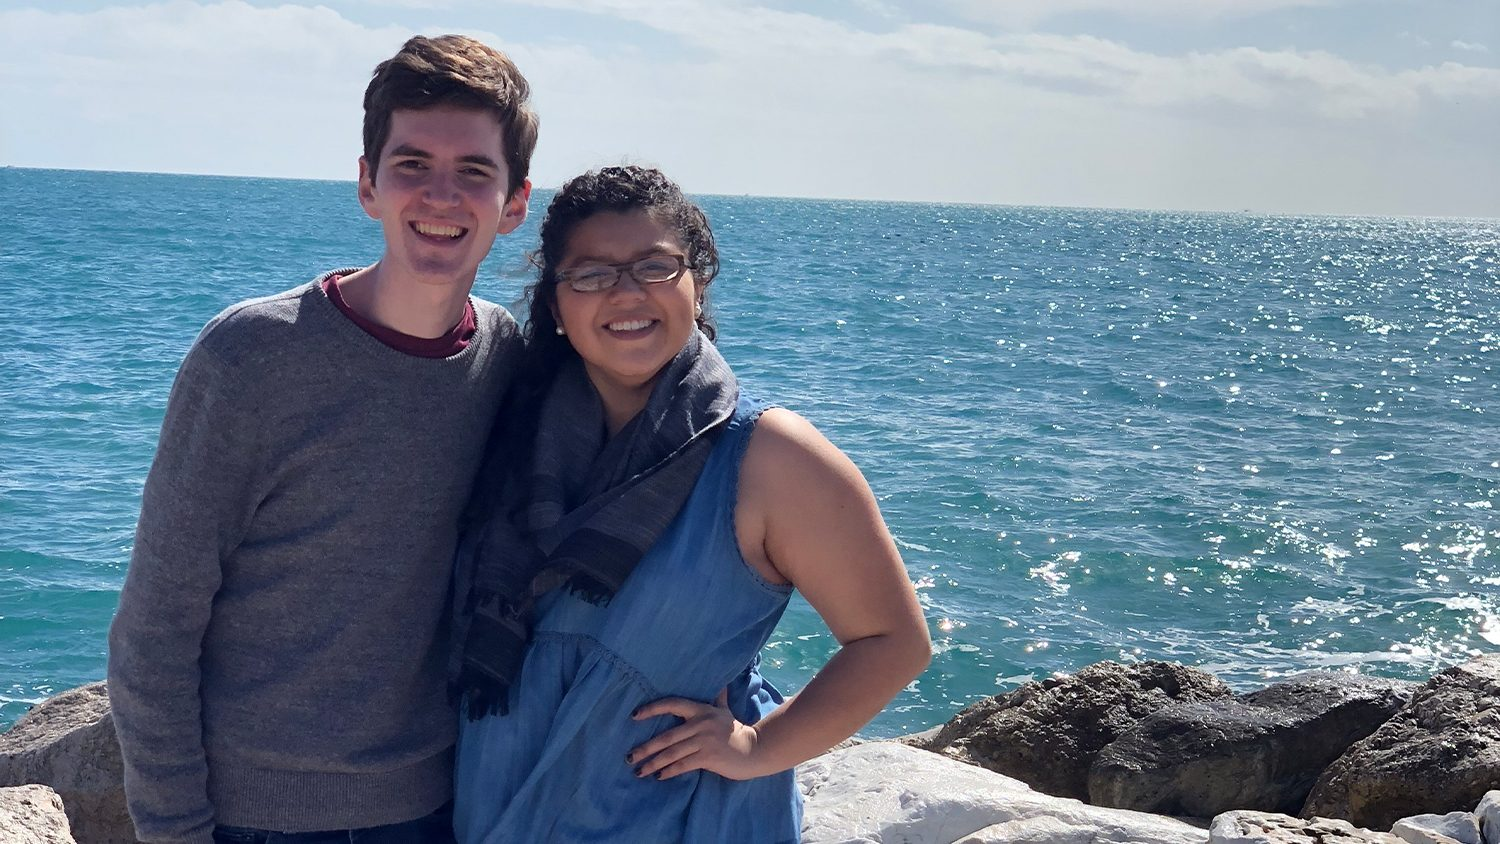 Mitchell Moravec and Jackie Gonzalez standing by ocean